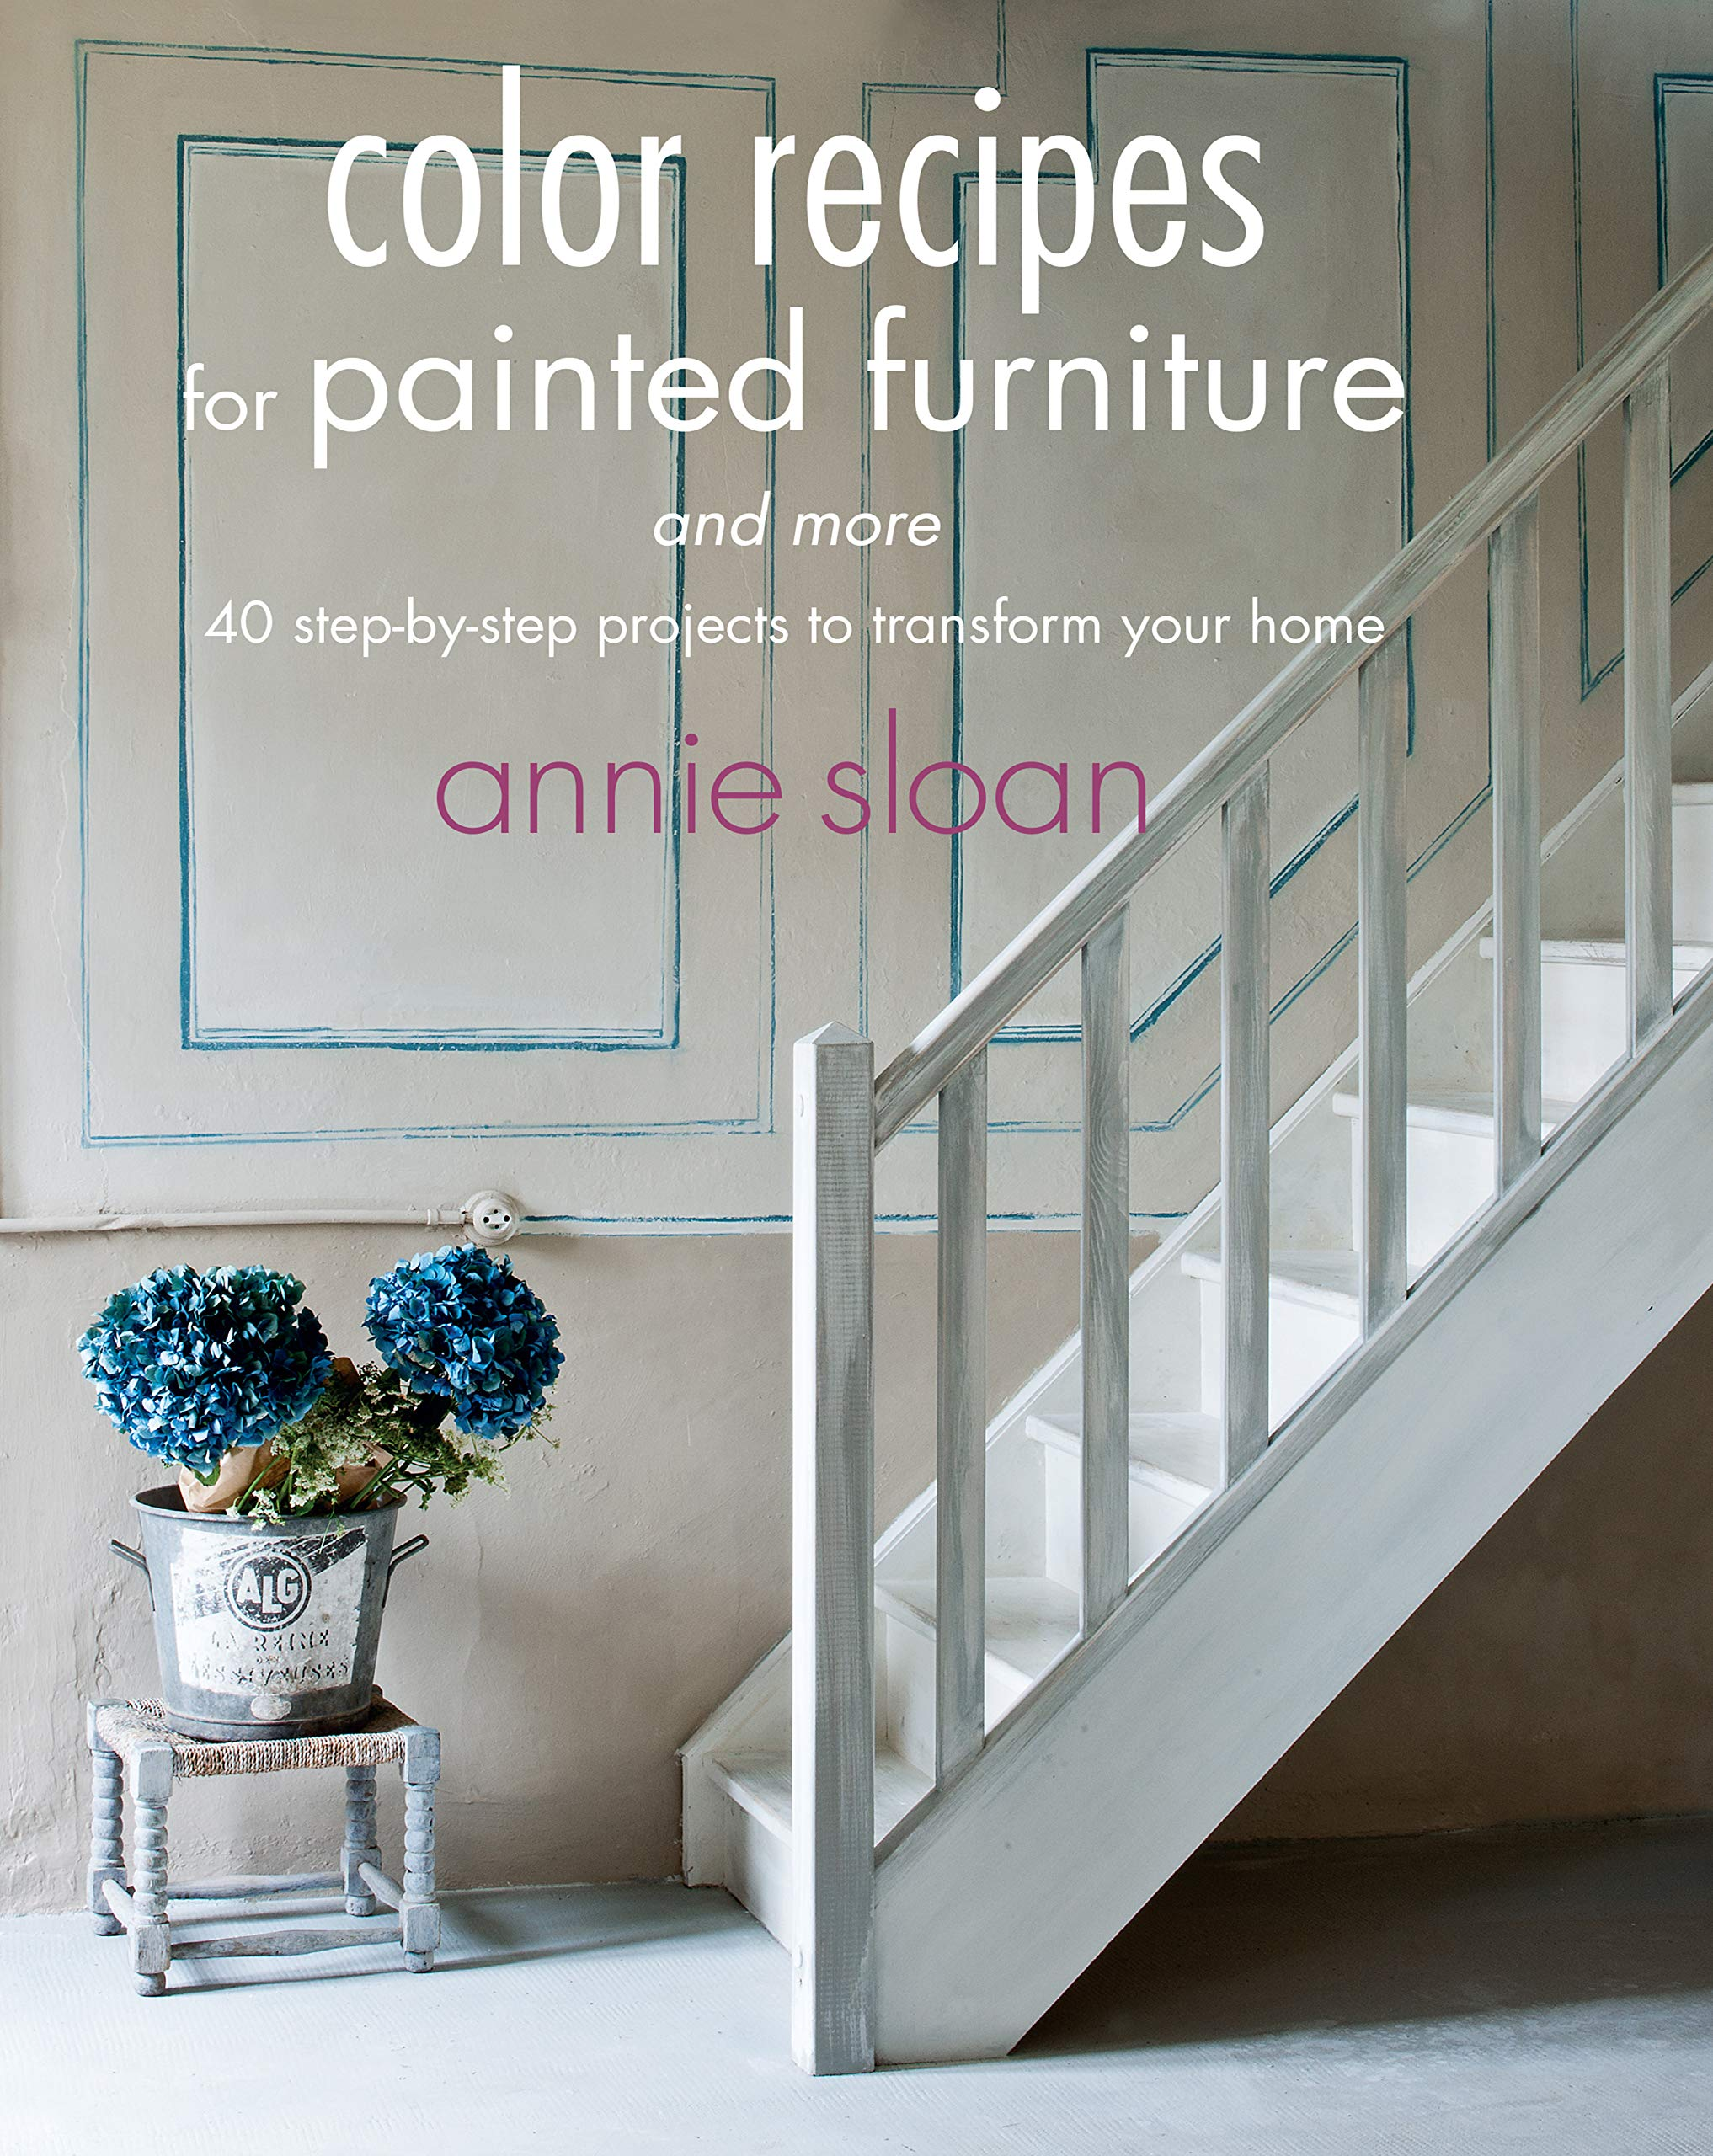 Color Recipes For Painted Furniture And More 40 Step By Projects To Transform Your Home Sloan Annie 9781908862778 Amazon Com Books